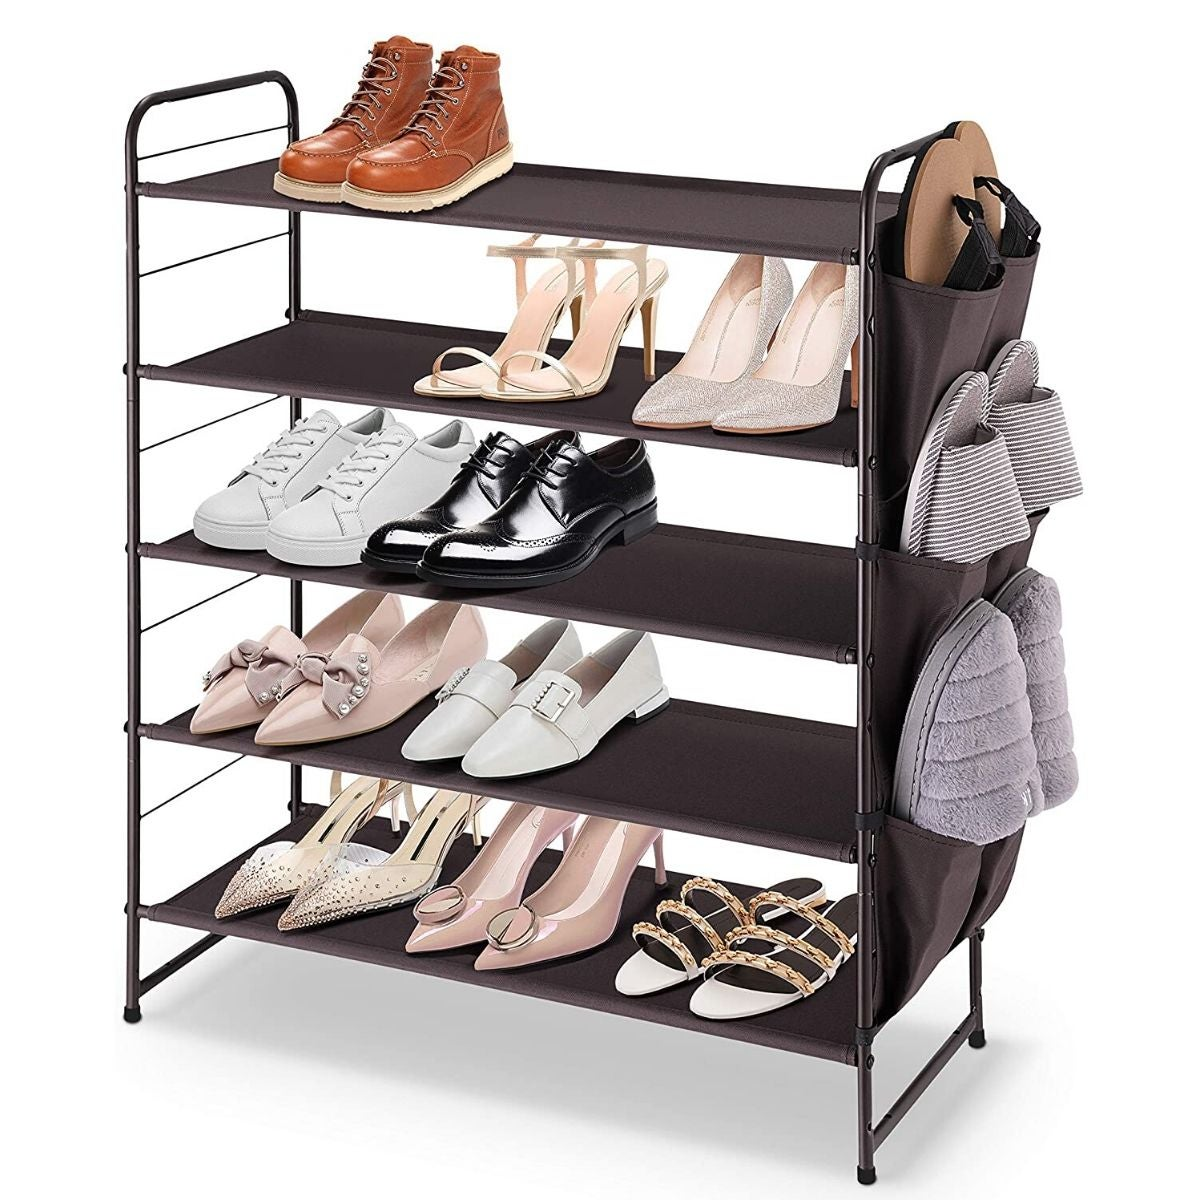 The Best Shoe Racks For Entryways And Closets Bob Vila